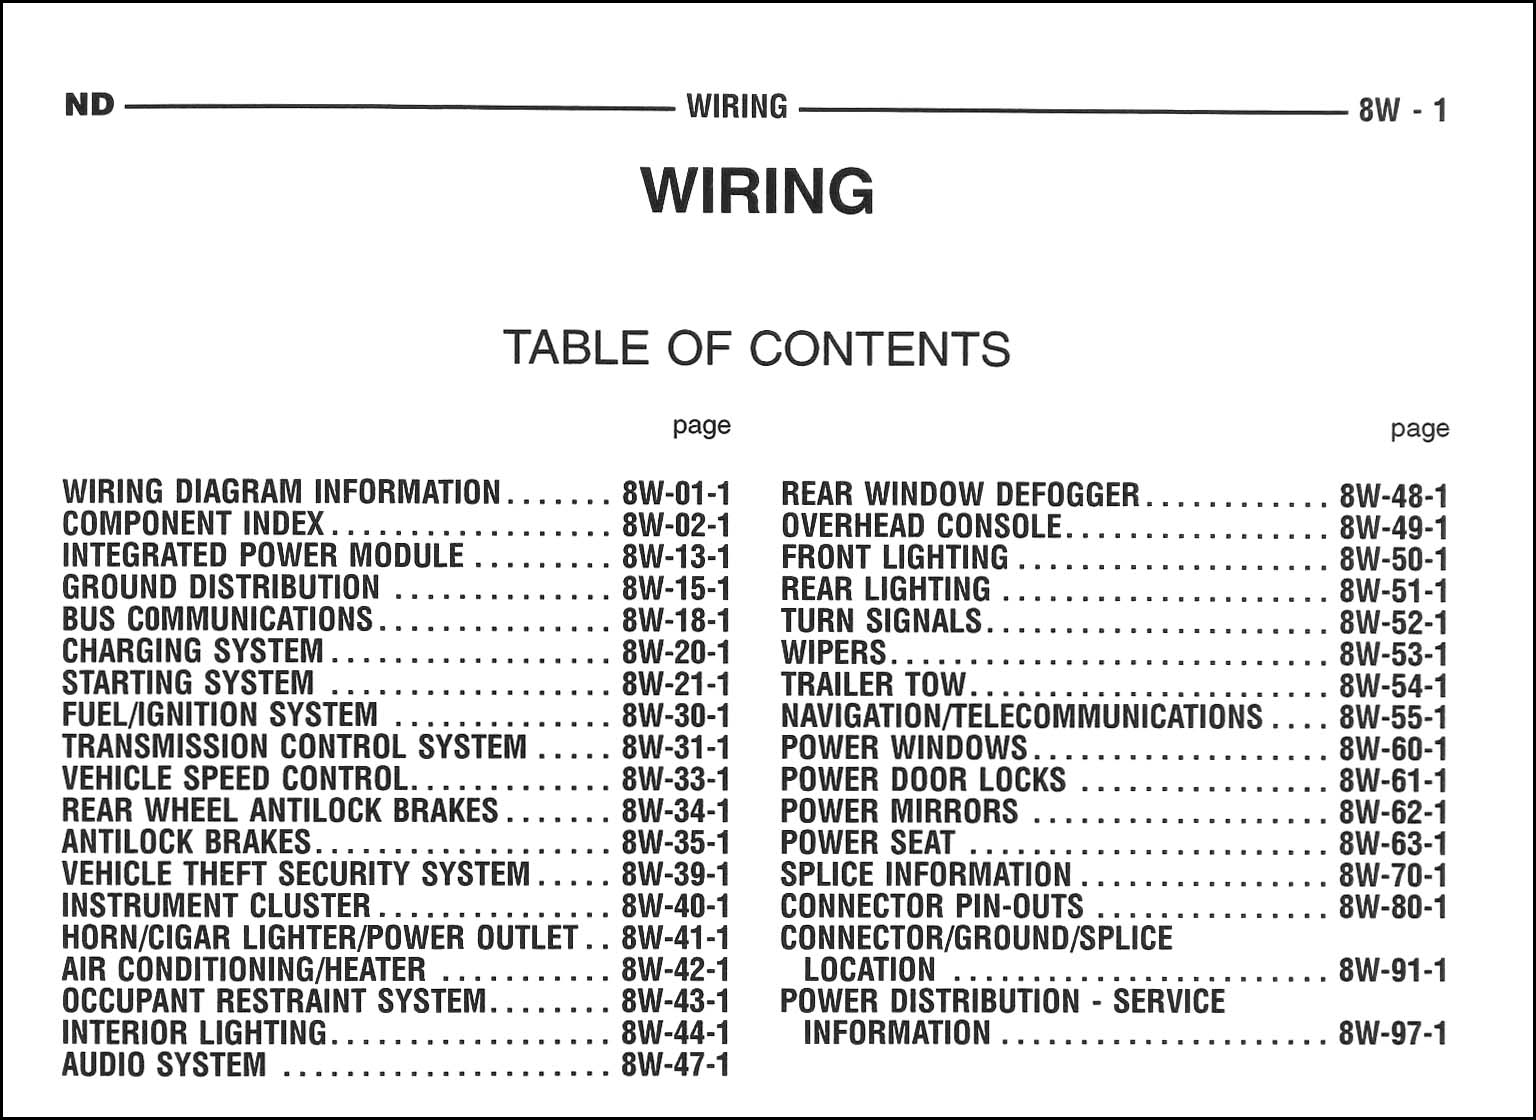 2005 Dodge Durango Wiring Diagram Manual Original · Table of Contents Page